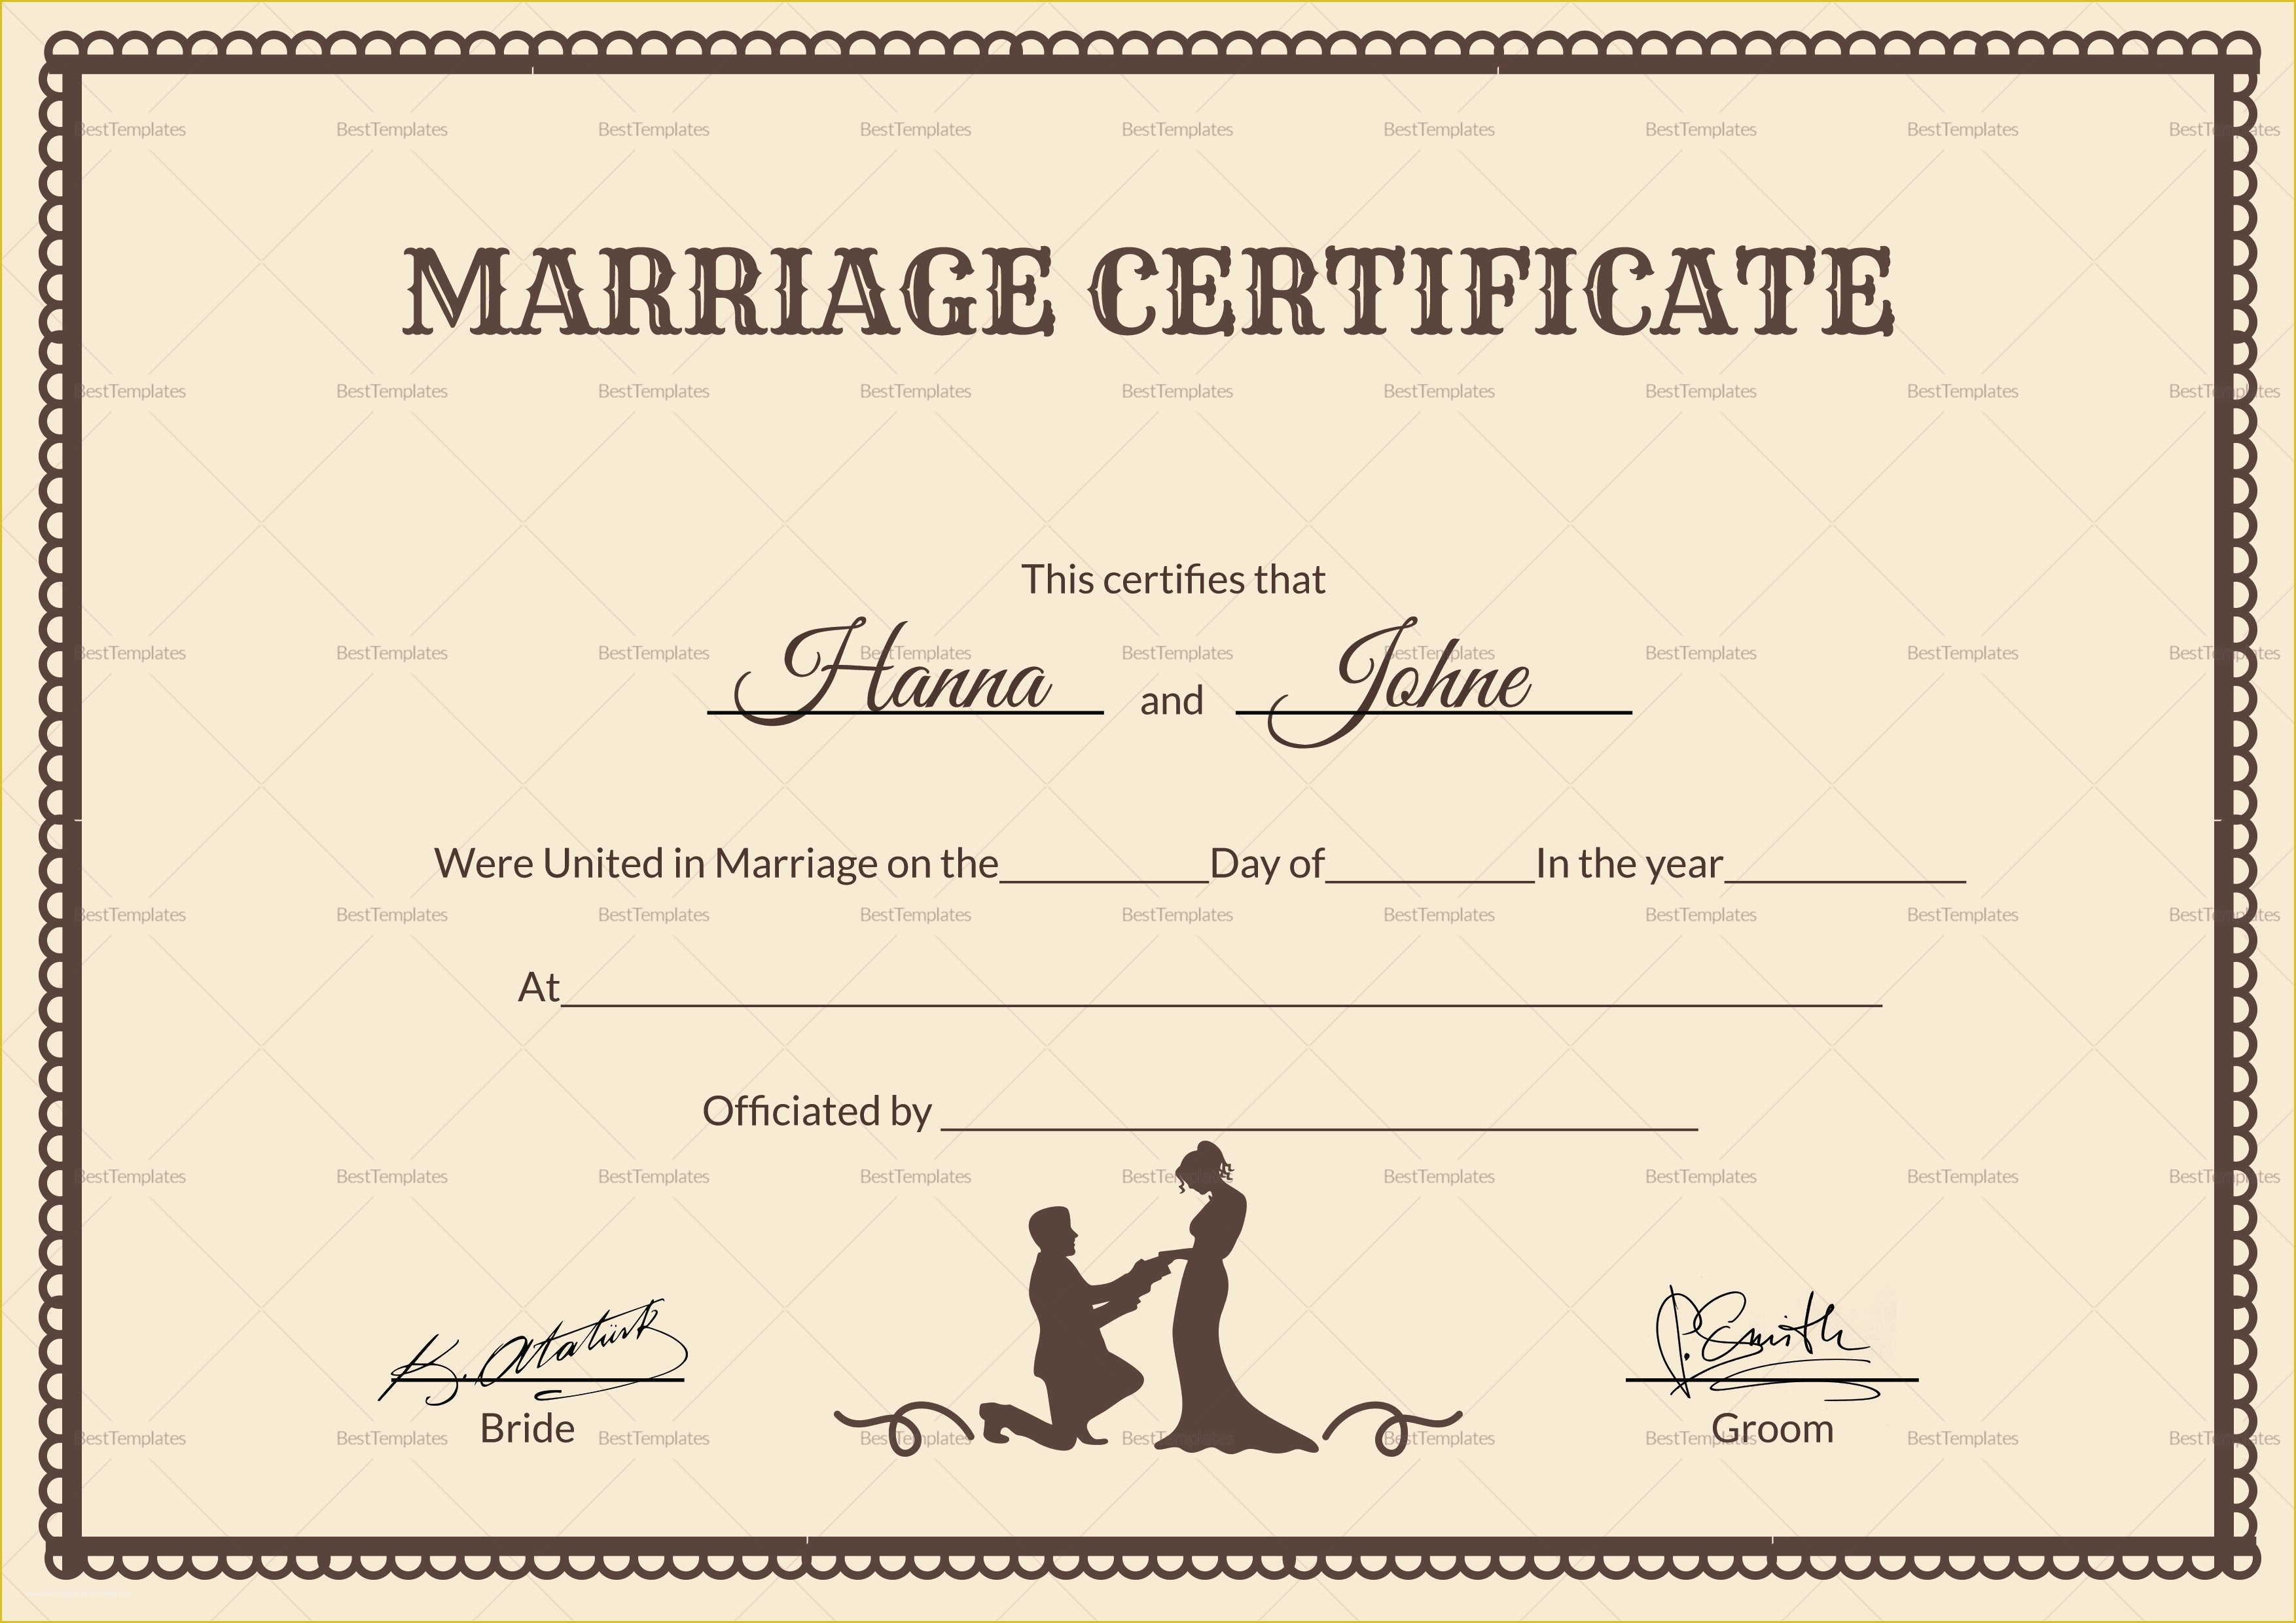 It's just a photo of Rare Free Marriage Certificate Template